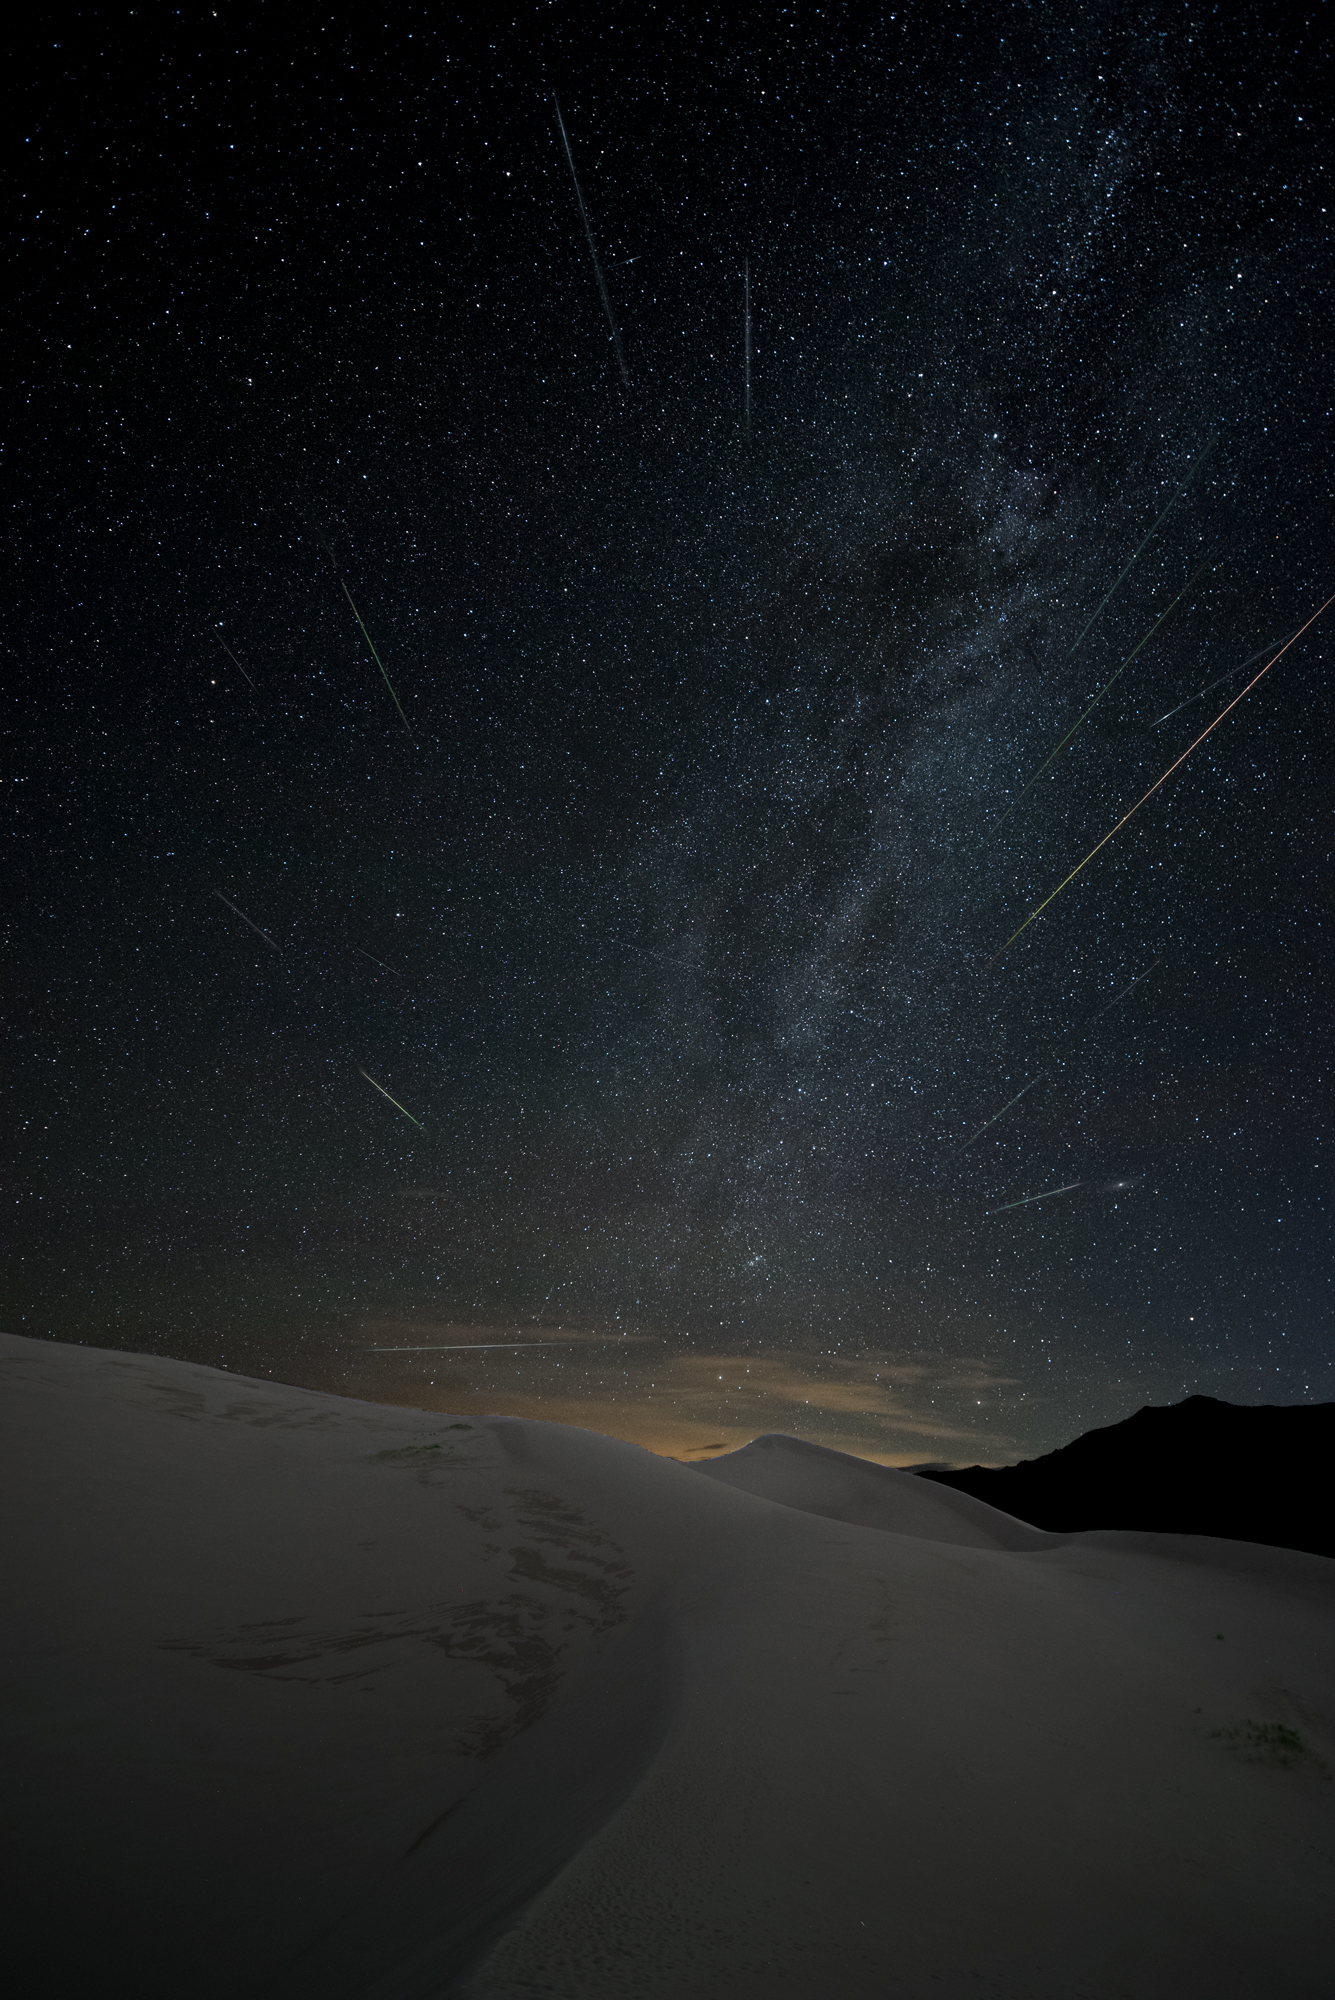 Great Sand Dunes National Park, Colorado. Nikon D750, 15mm Zeiss Distagon f/2.8 lens. 234 images at 22 seconds, f/2.8, ISO 6400, plus a single exposure at 382 seconds, ISO 2000 for the landscape after moonrise.